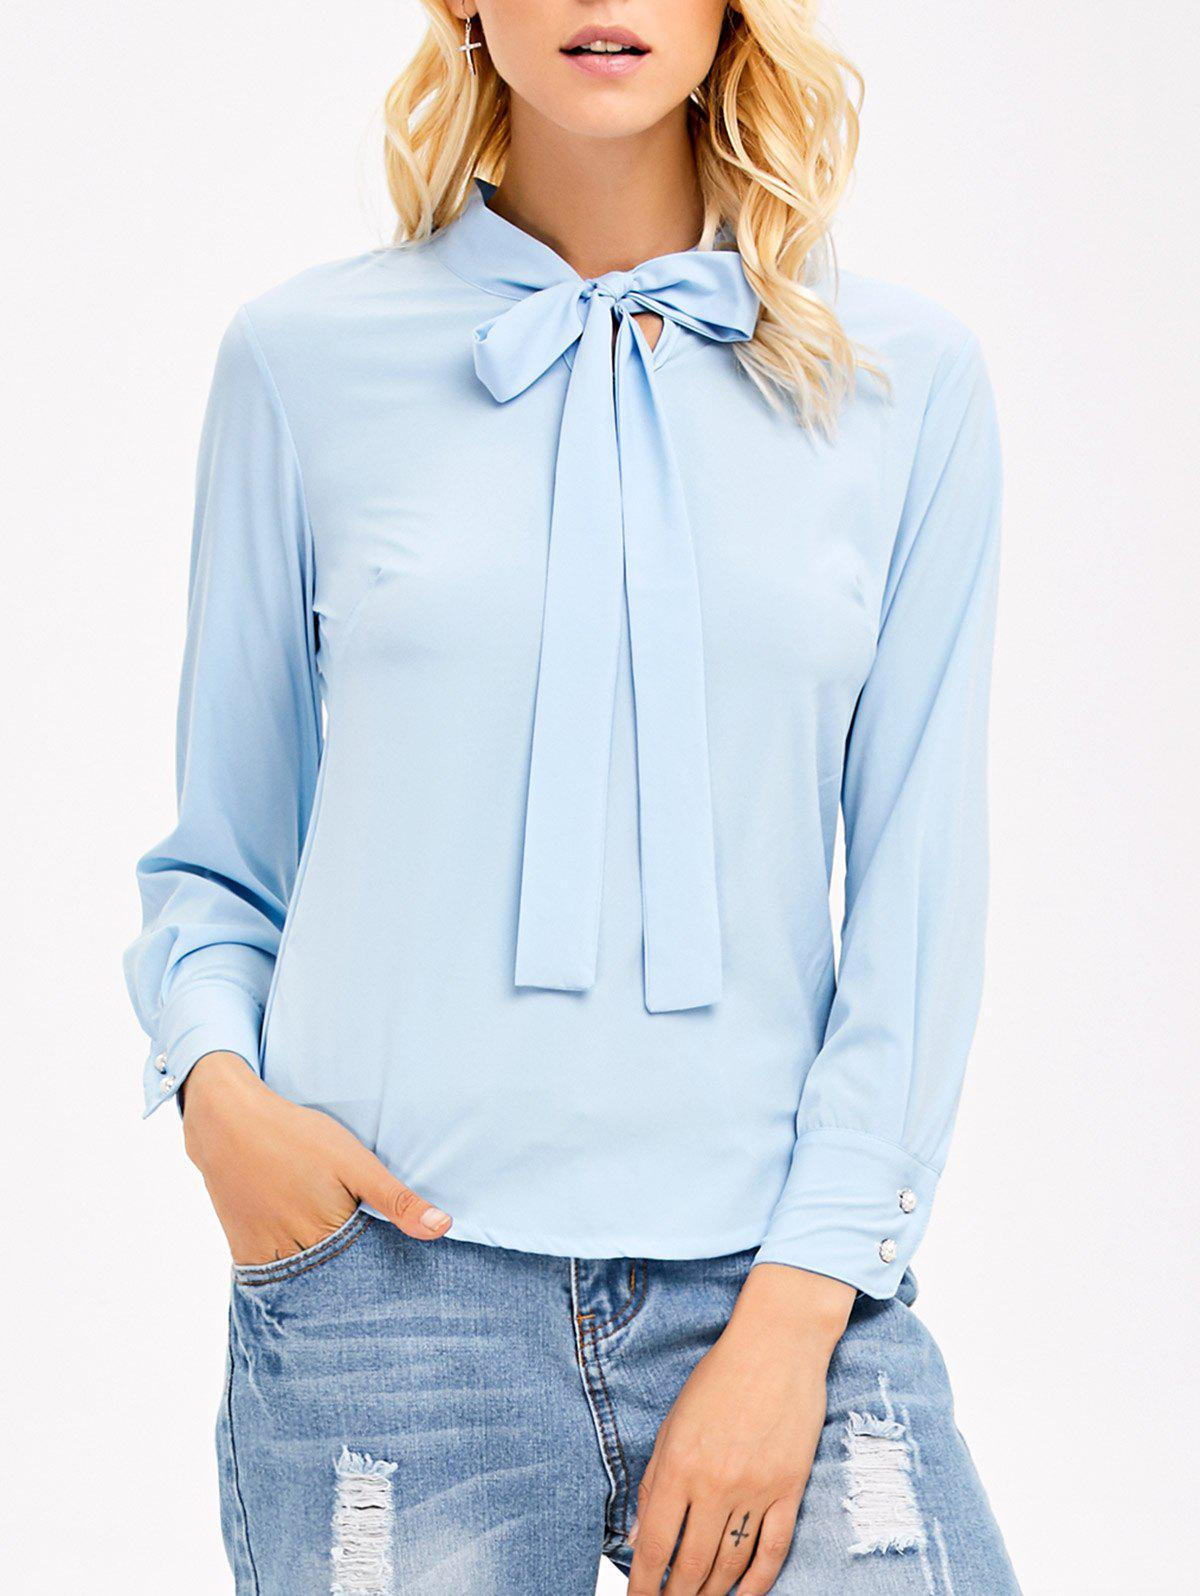 Bow Collar Long Sleeves Blouse - LIGHT BLUE L